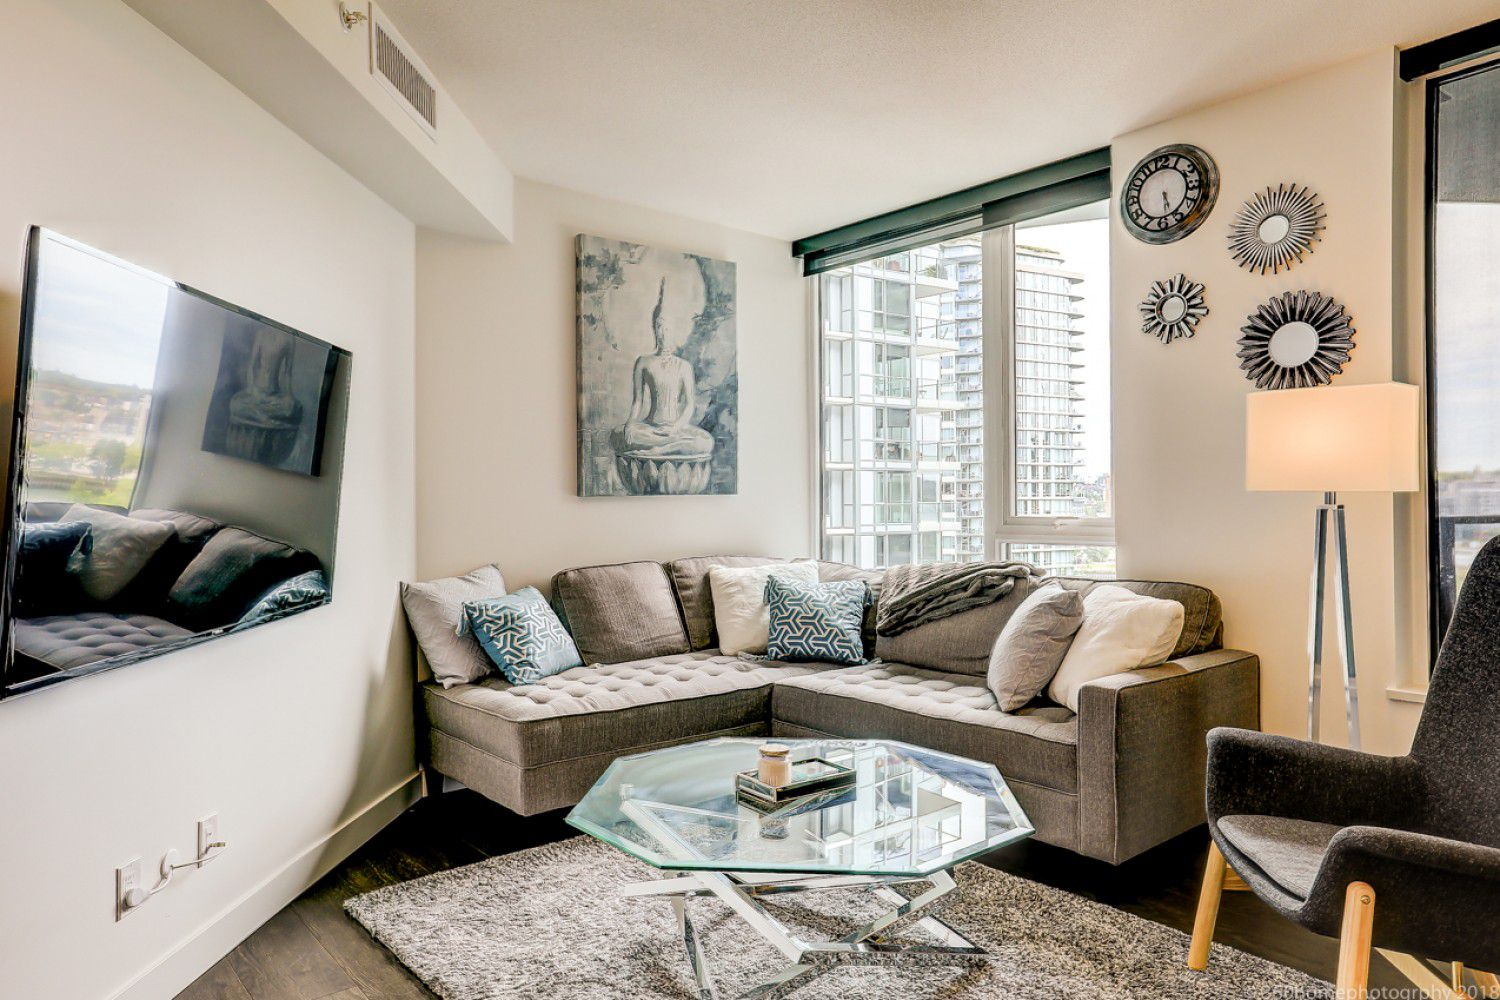 Main Photo: 68 Smithe in : Yaletown Condo for lease (Vancouver)